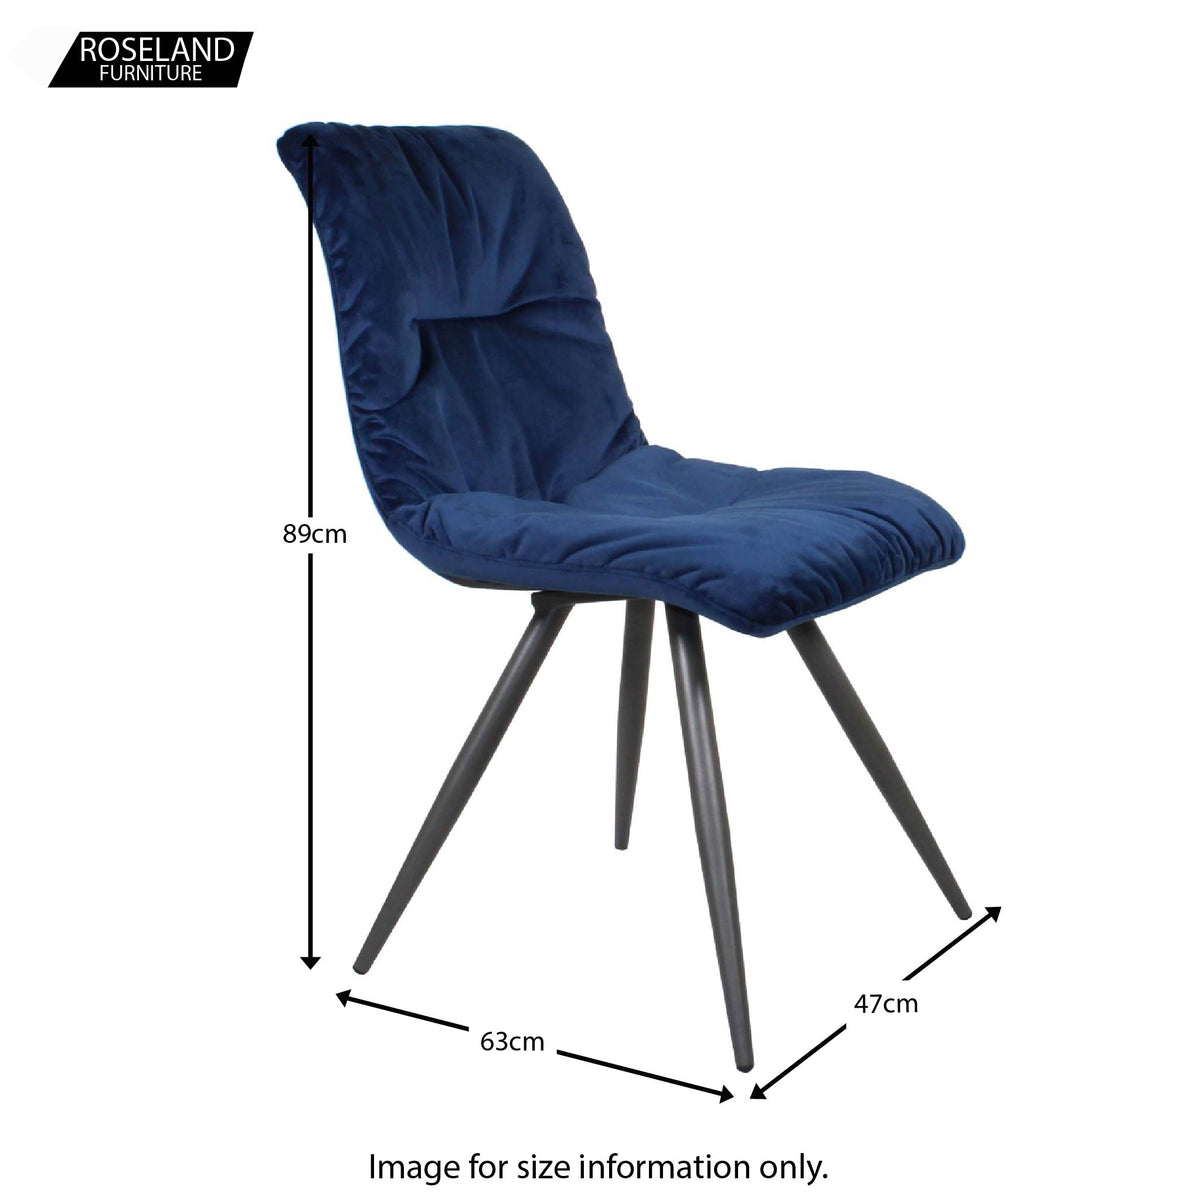 Dimensions of the Blue Addison Velvet Chair from Roseland Furniture